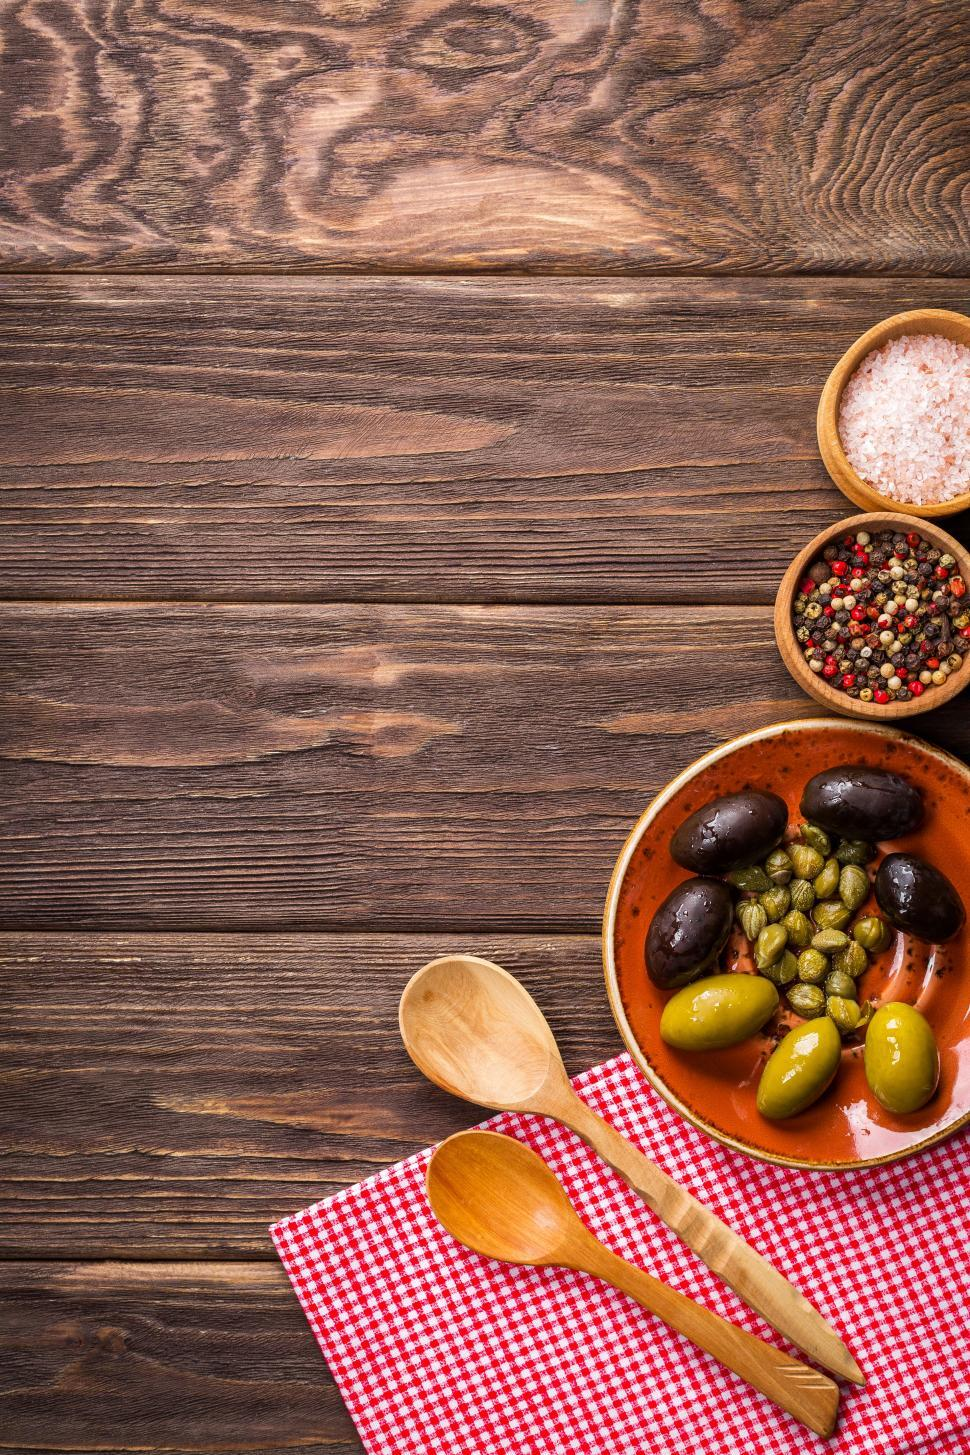 Download Free Stock HD Photo of Overhead view of olives and garlic in a plate on the wooden table Online